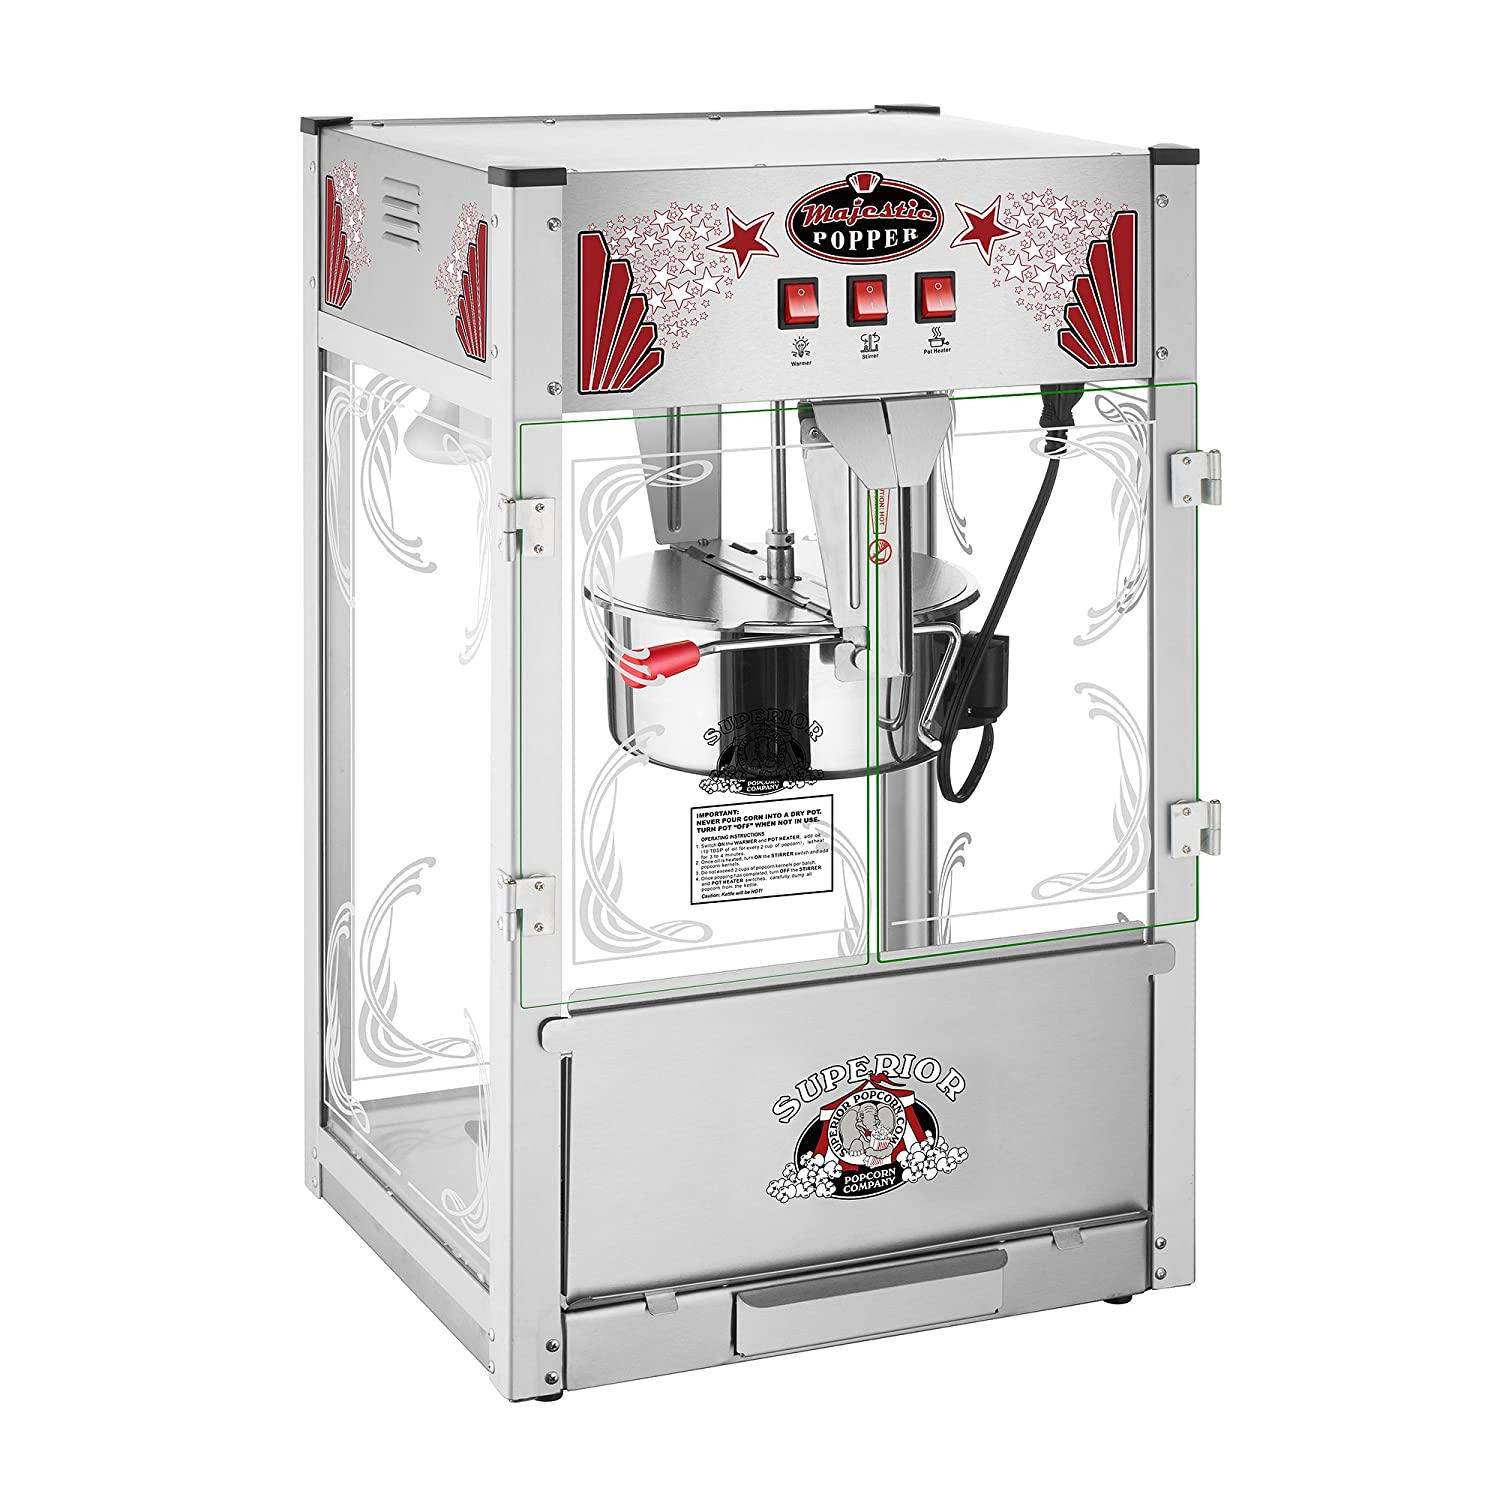 Majestic Popcorn Machine- Commercial Style Popcorn Popper Machine-Makes Approx. 7.5 Gallons Per Batch by Superior Popcorn (16 oz.) Superior Popcorn Company 82-P068